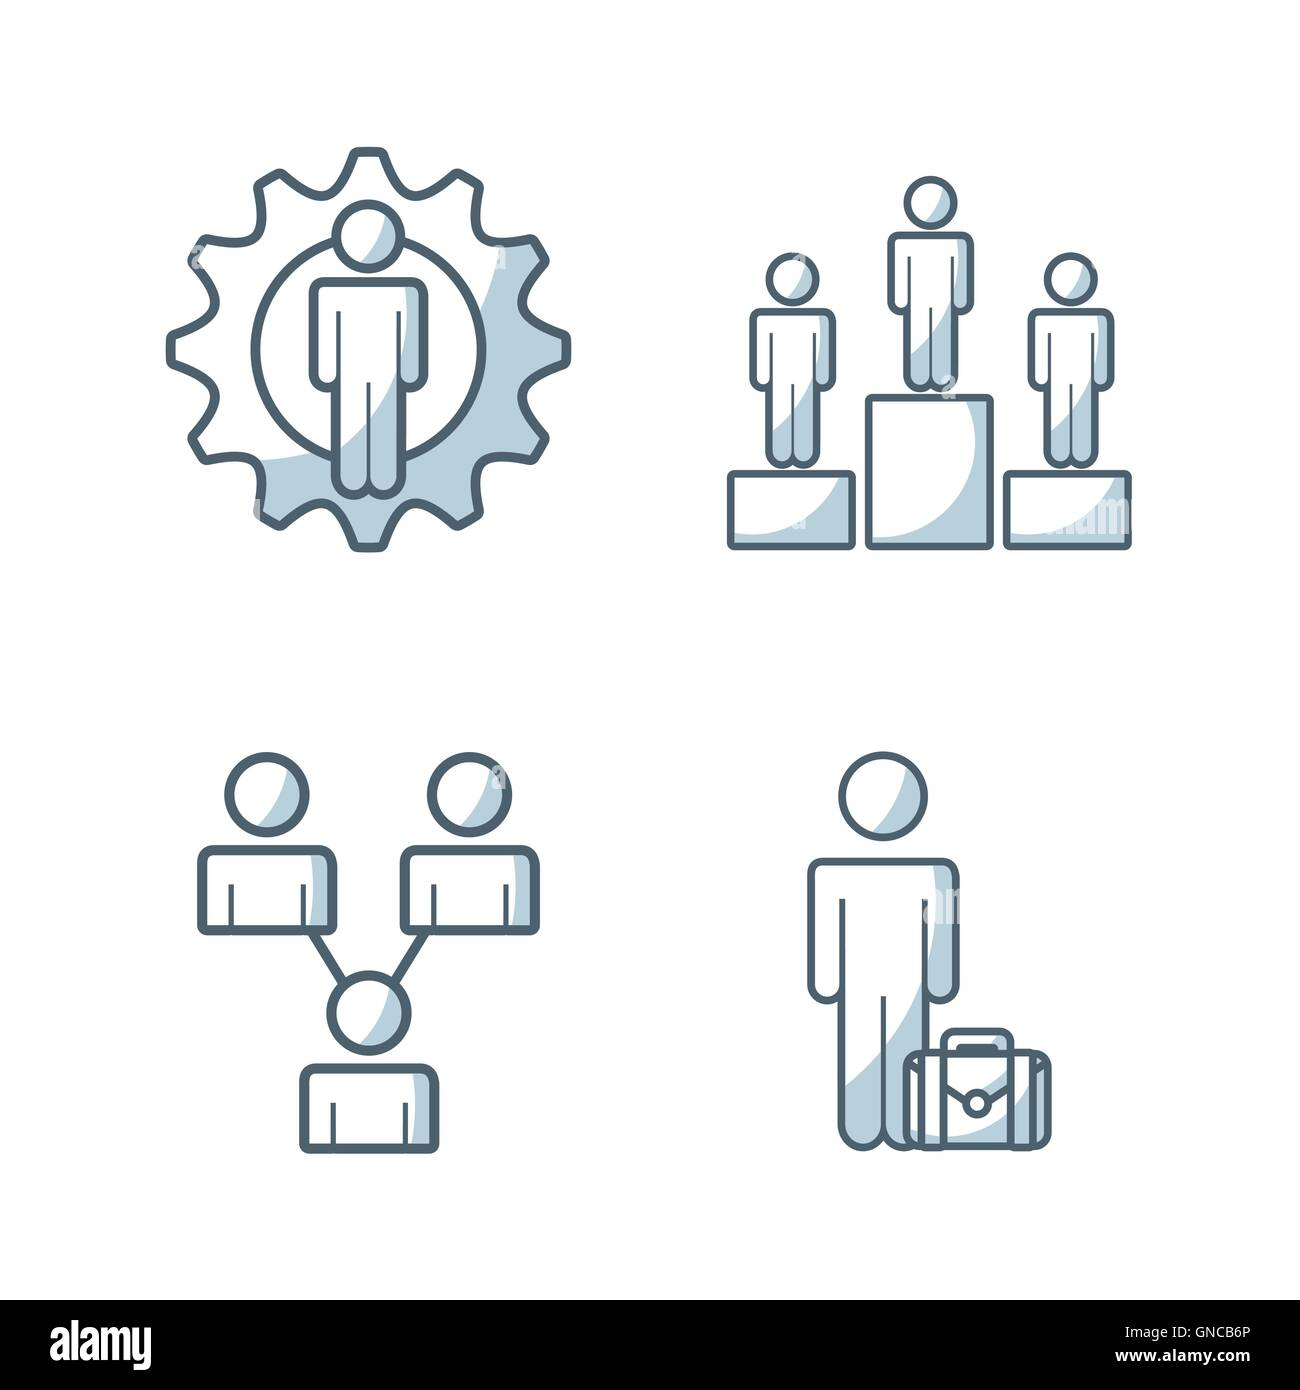 team work concept isolated icon - Stock Image